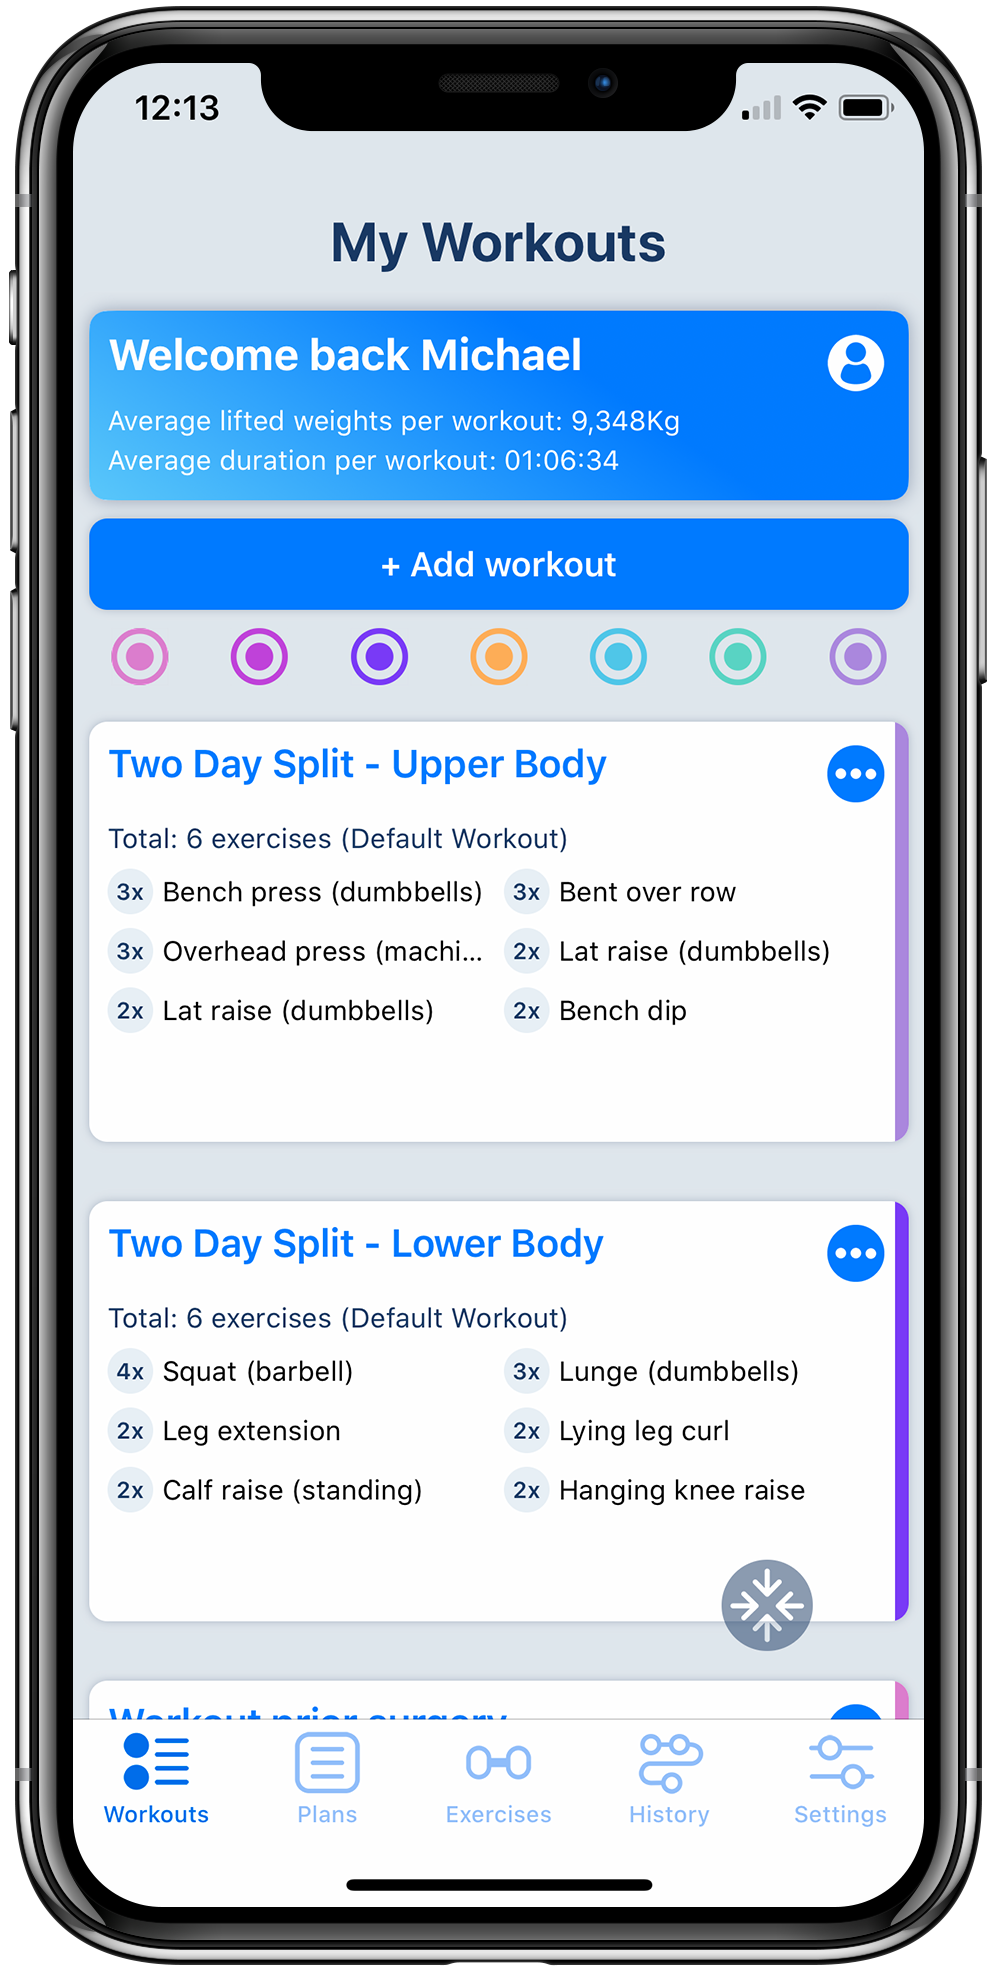 Workout tracker app on iPhone displaying a list of fitness workouts